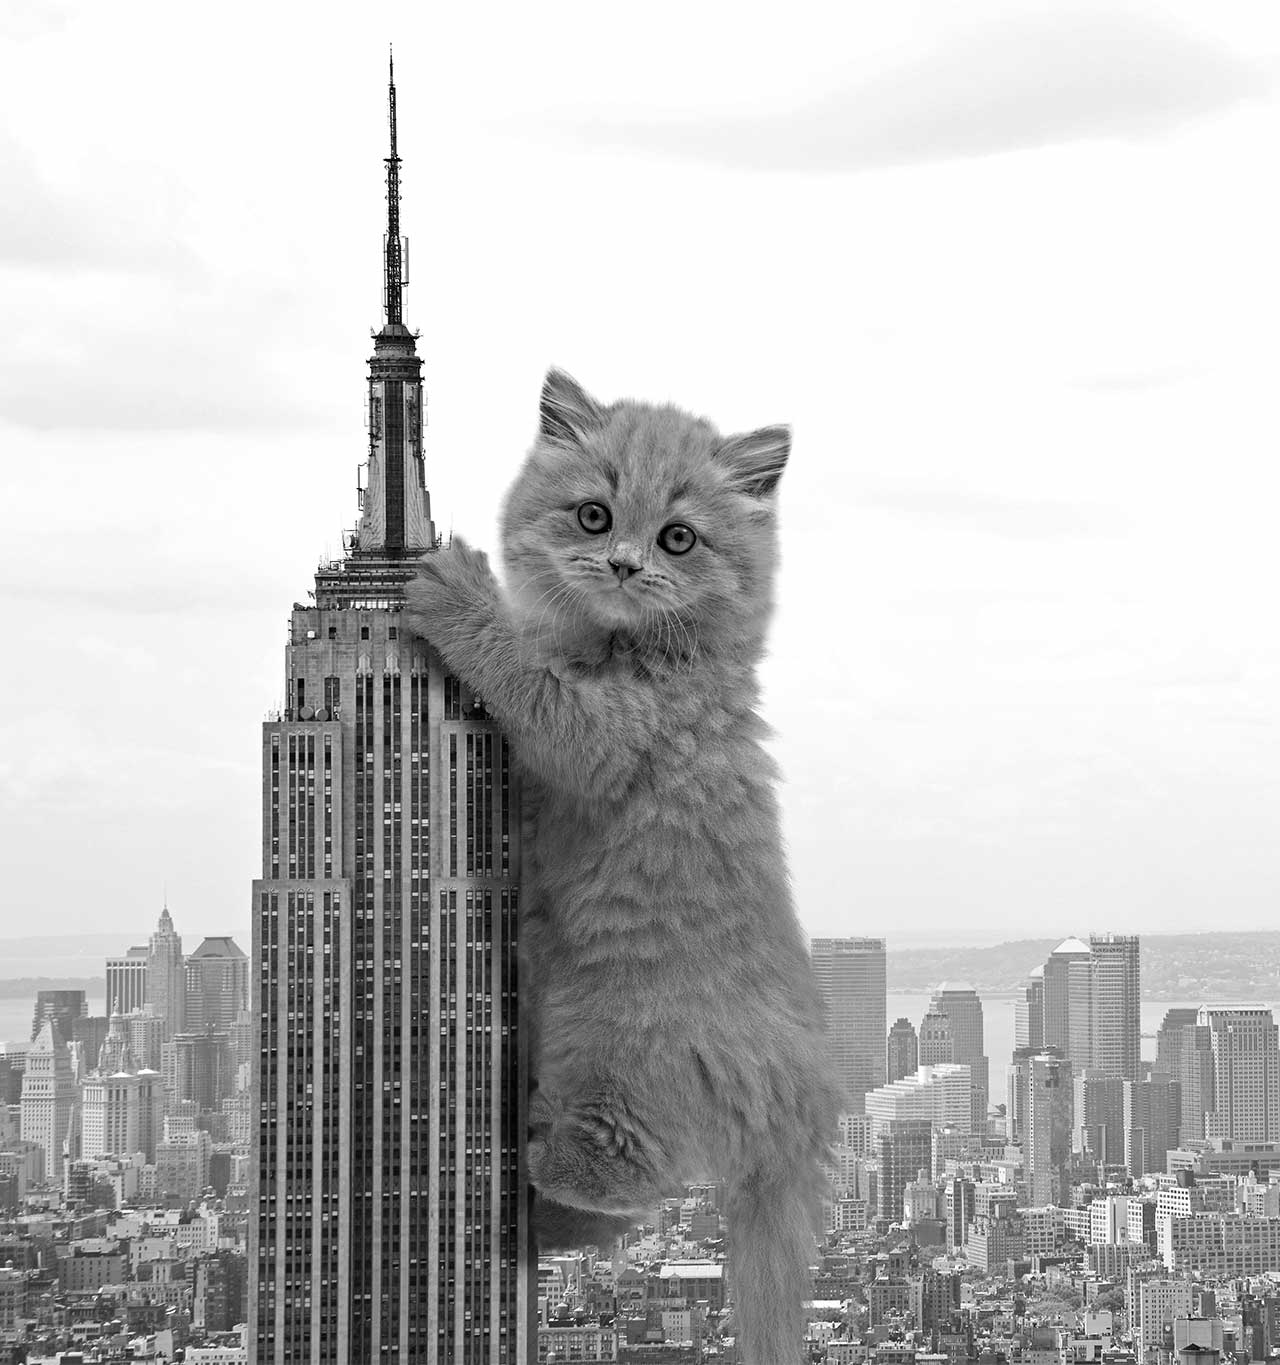 Cat hanging from the chrysler building